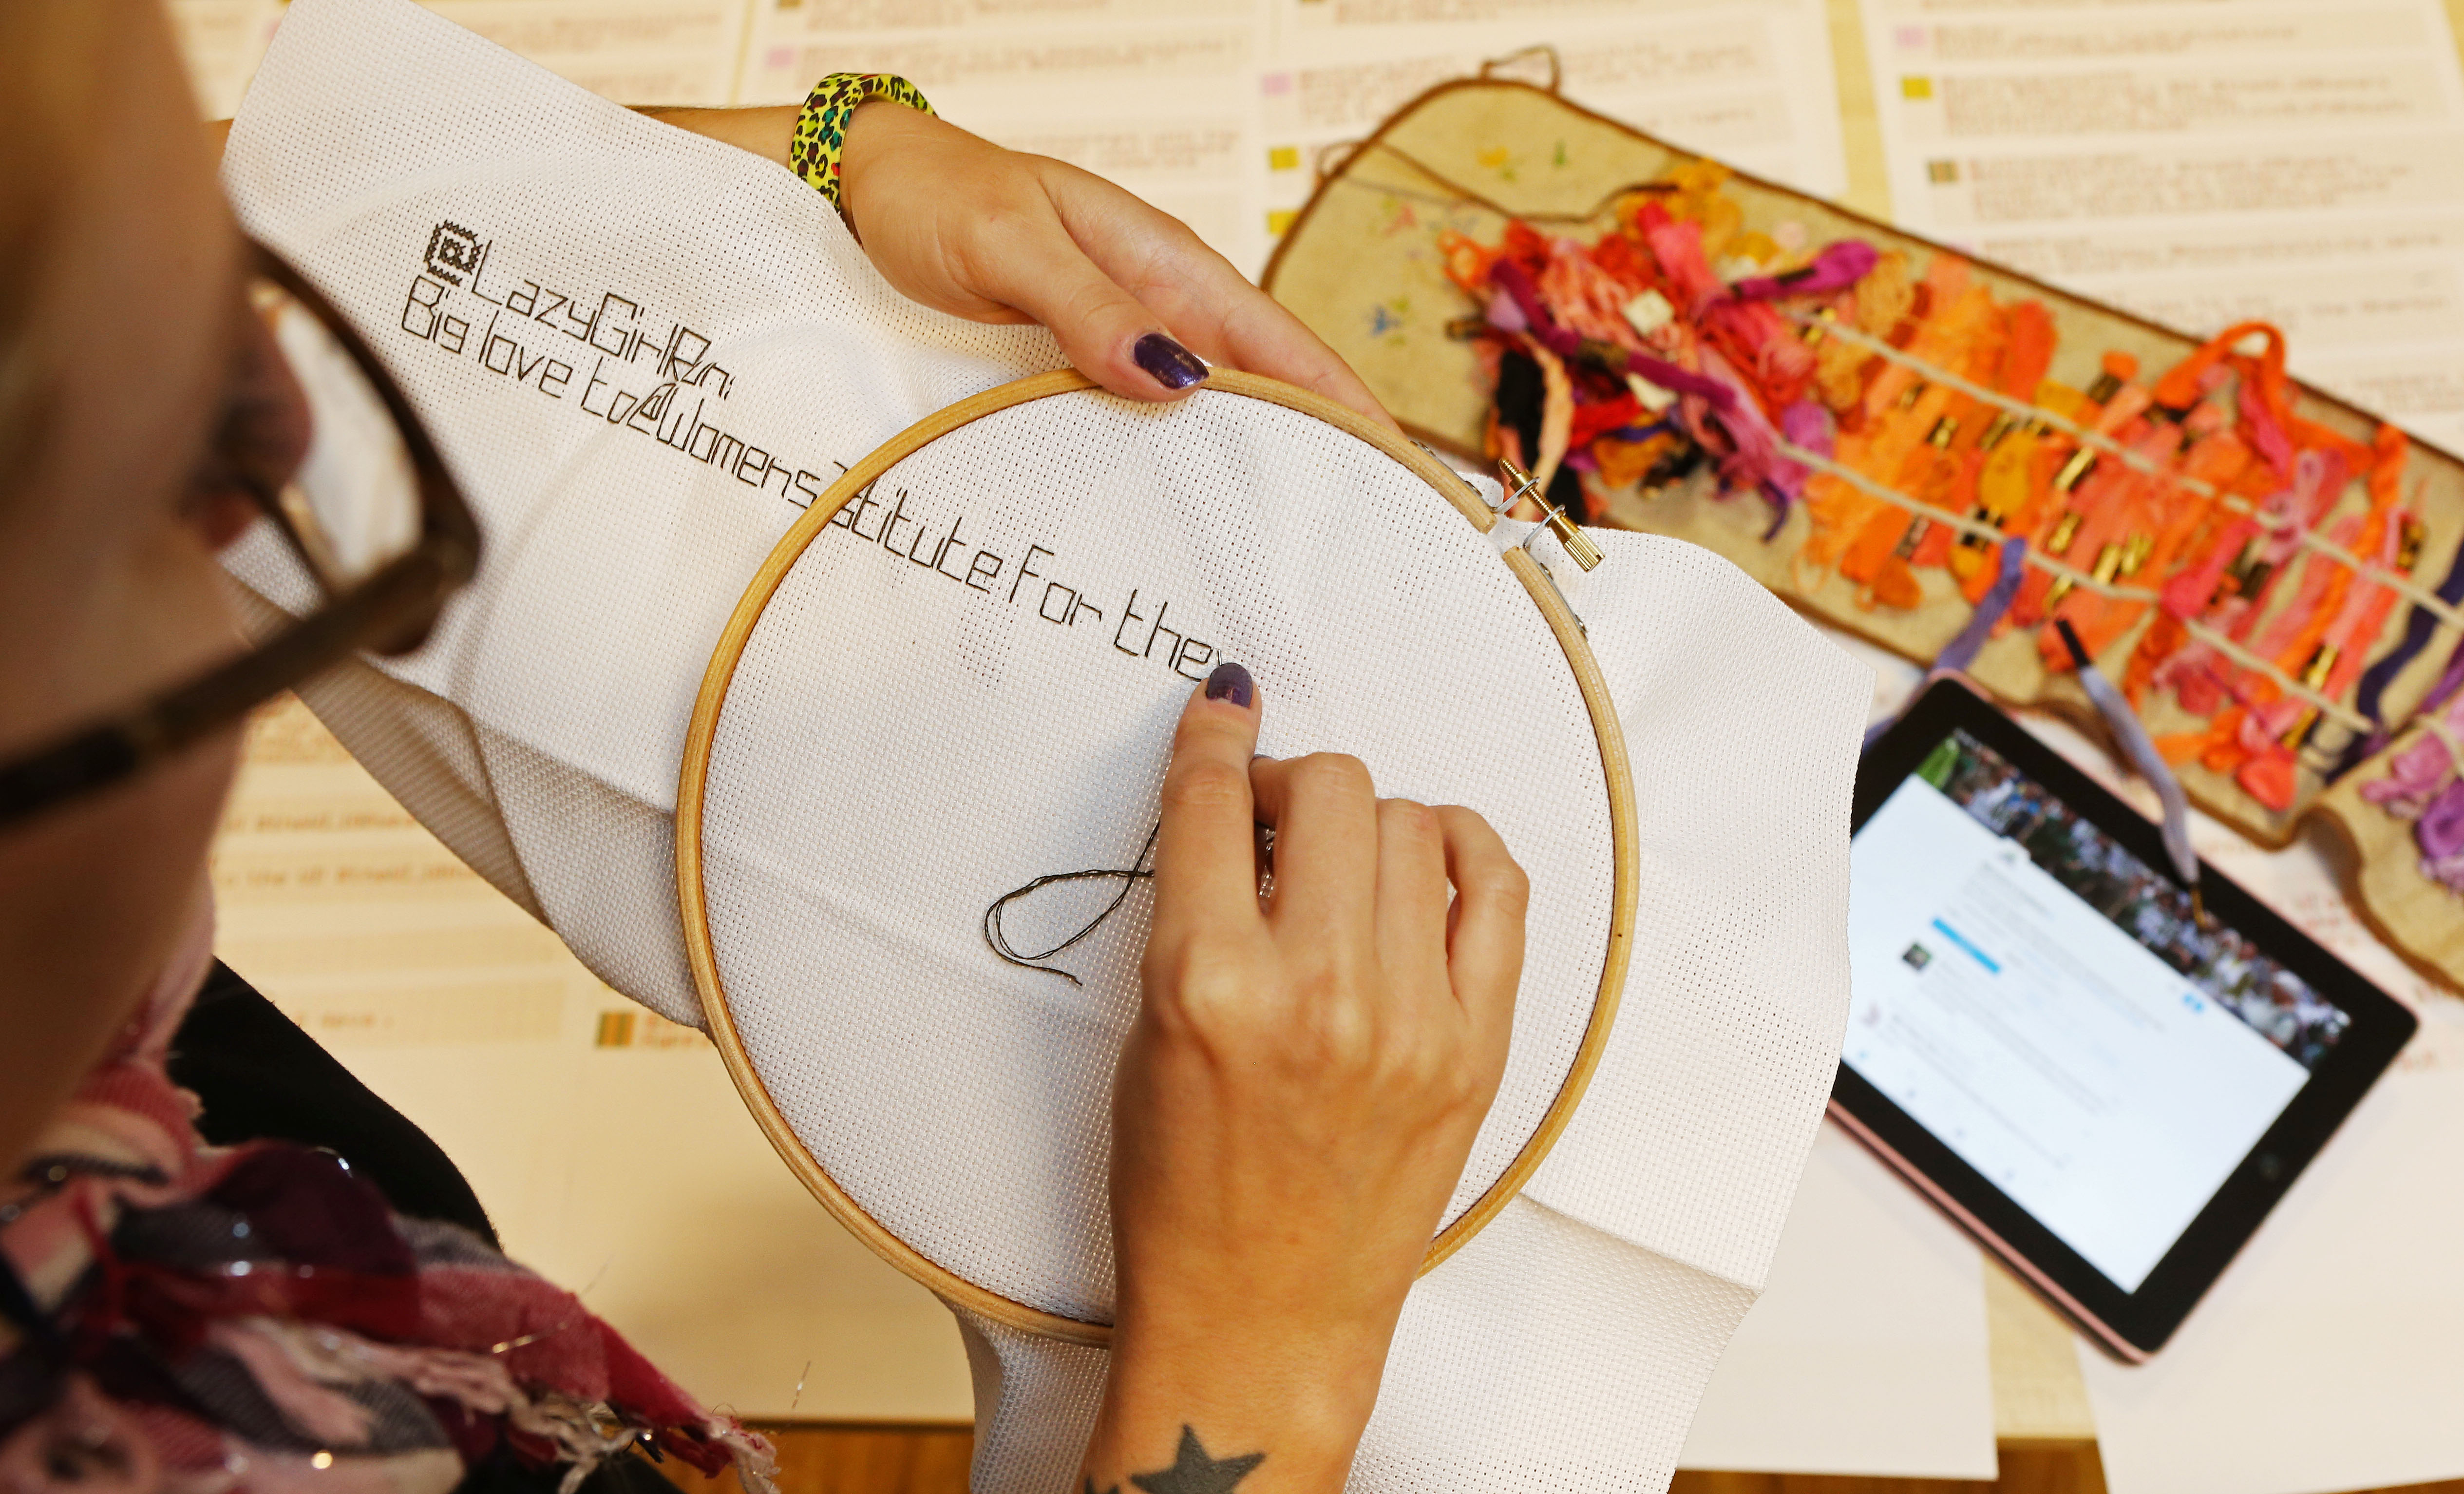 Mandatory Credit: Photo by Joe Pepler/REX Shutterstock (5086417e) A member of the WI stitches a twitter message onto canvas WI Twitter live-stitching, Women's Institute Headquarters, London, Britain - 16 Sep 2015 The National Federation of Women's Institutes is celebrating its centenary in 2015. As part of the celebrations, and to bridge the gap between the traditional reputation of the WI and the modern digital age, the Institute held a 'tWItterstitch' live event.  During the event, a group of WI members live-stitch anniversary wishes that are received via Twitter by both manually cross-stitching and machine stitching the messages. The tweets are then auto-printed onto a sewing pattern as they are received and handed to one of the stitching team to be committed to canvas. Each individual stitched tweet is added to a large wall hanging, which will be put on display at the NFWI headquarters to provide a lasting legacy of the online buzz around the centenary.